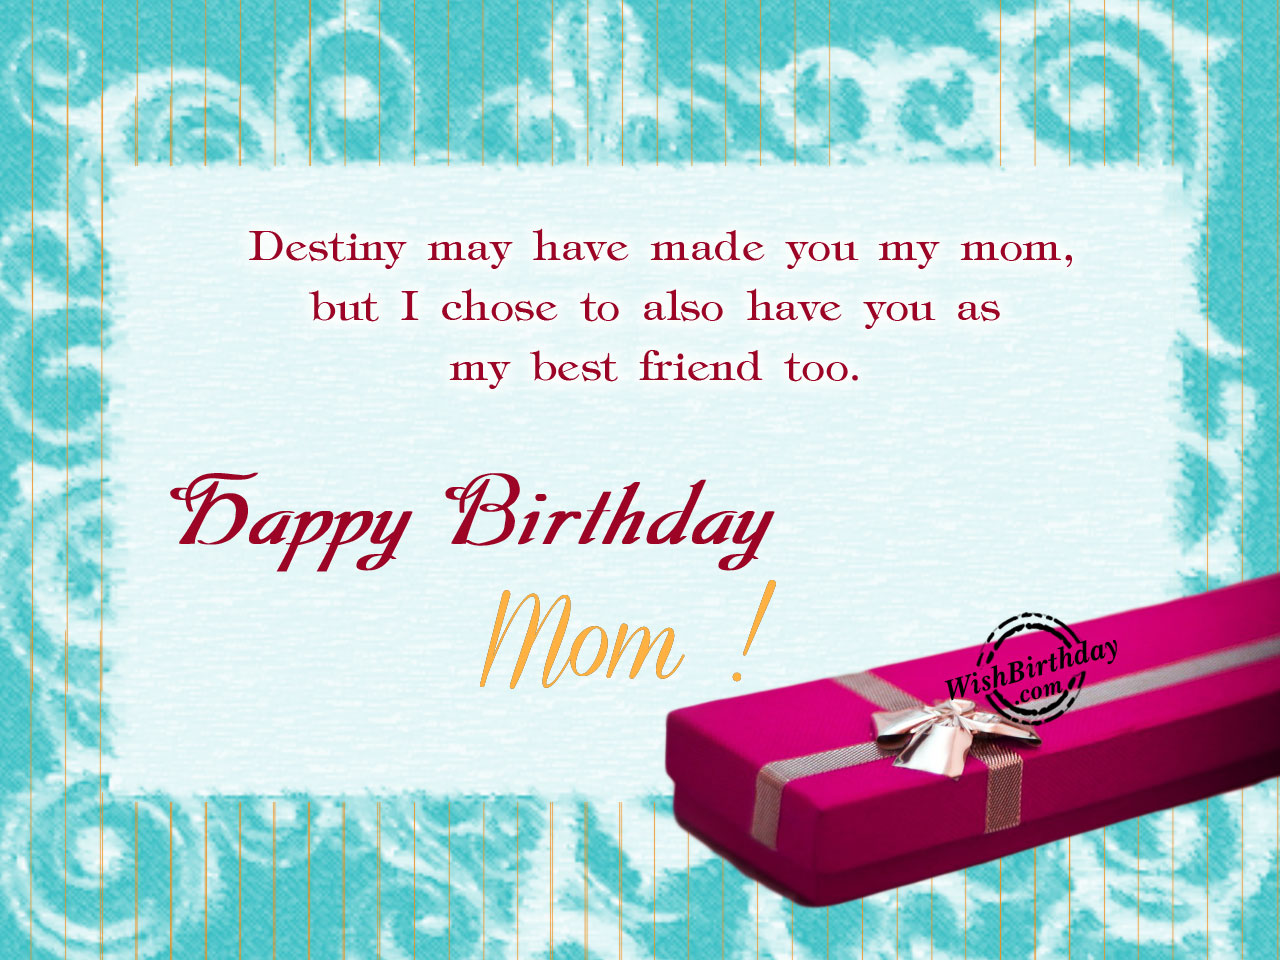 Birthday Wishes For Mother Birthday Images Pictures – Birthday Greetings to My Mom